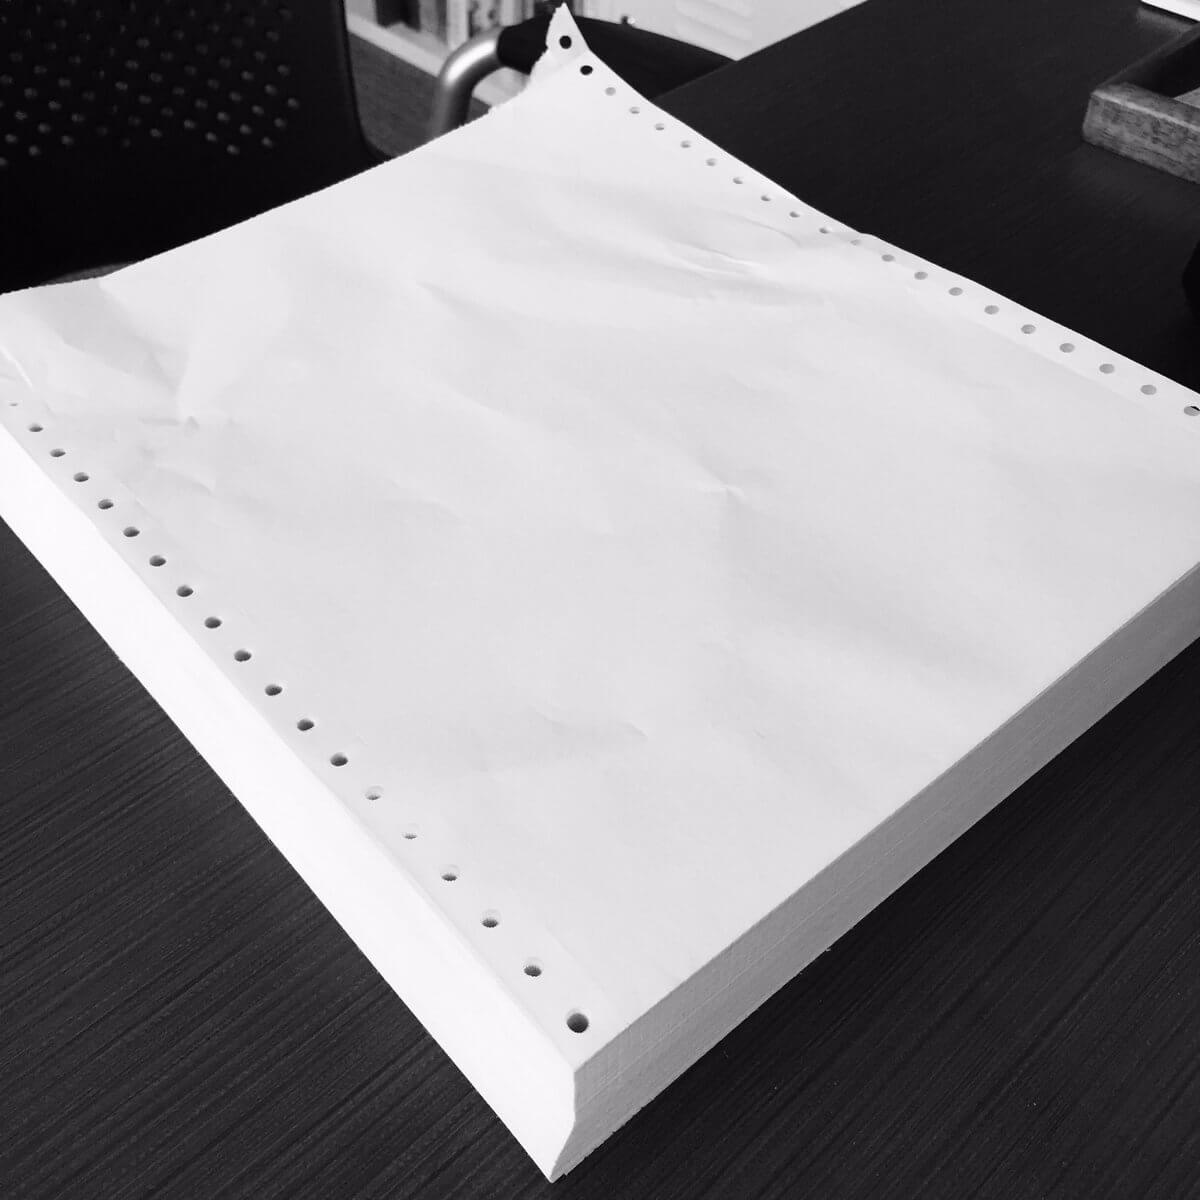 dot matrix paper.jpg